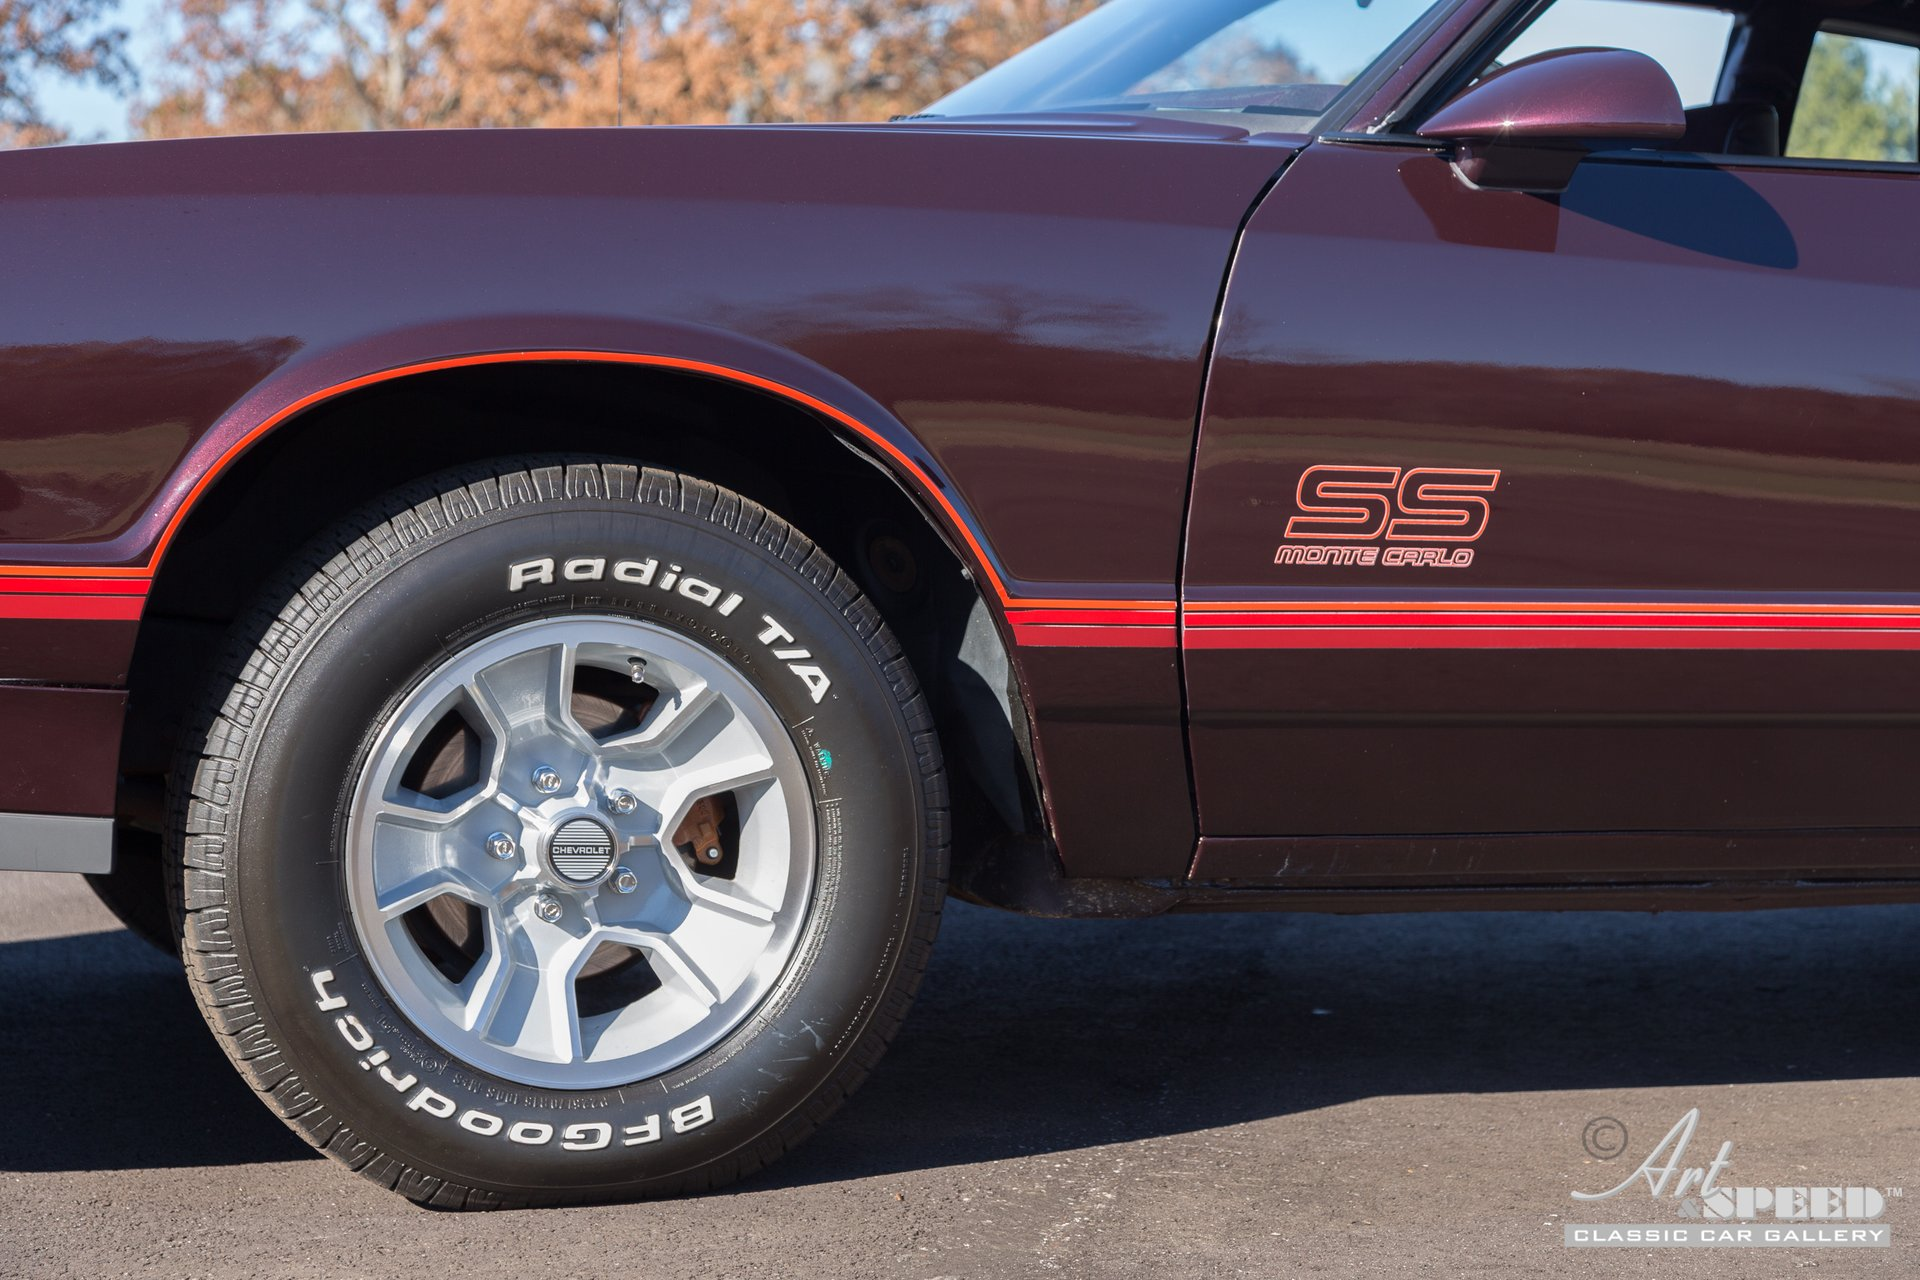 1987 Chevrolet Monte Carlo | Art & Speed Classic Car Gallery in